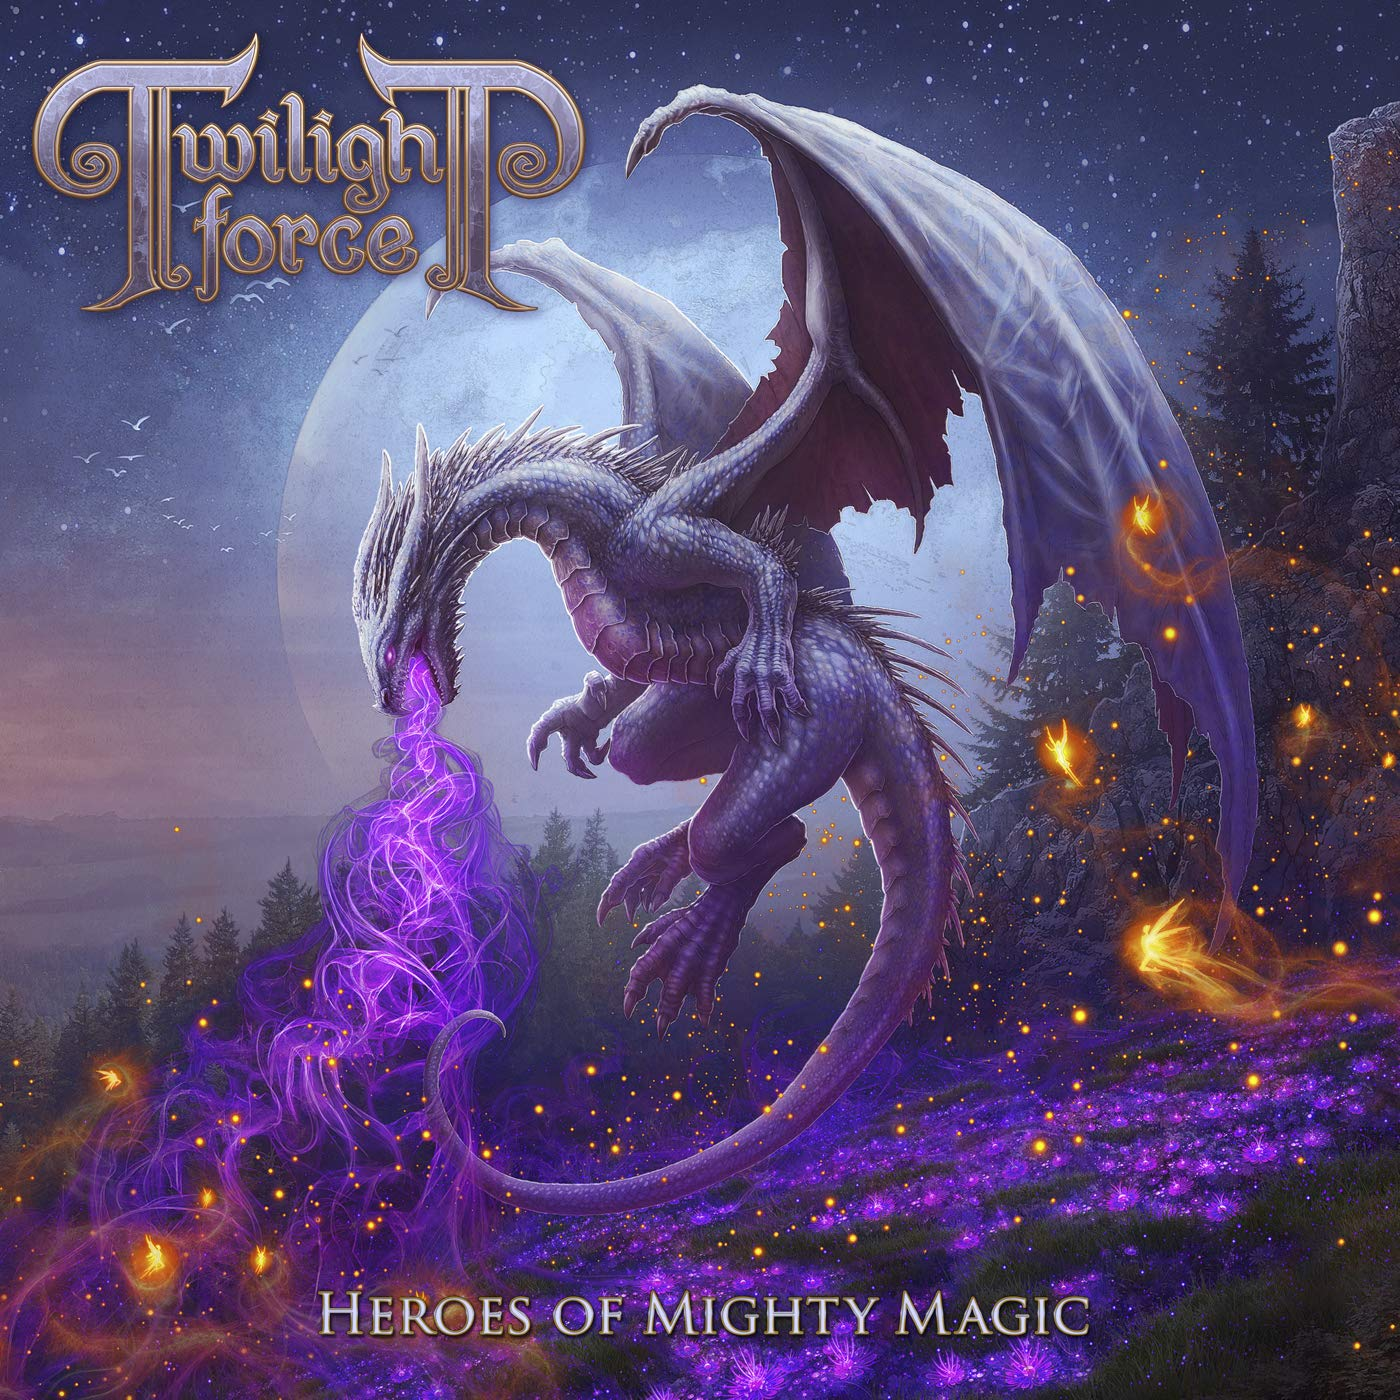 CD : Twilight Force - Heroes Of Mighty Magic